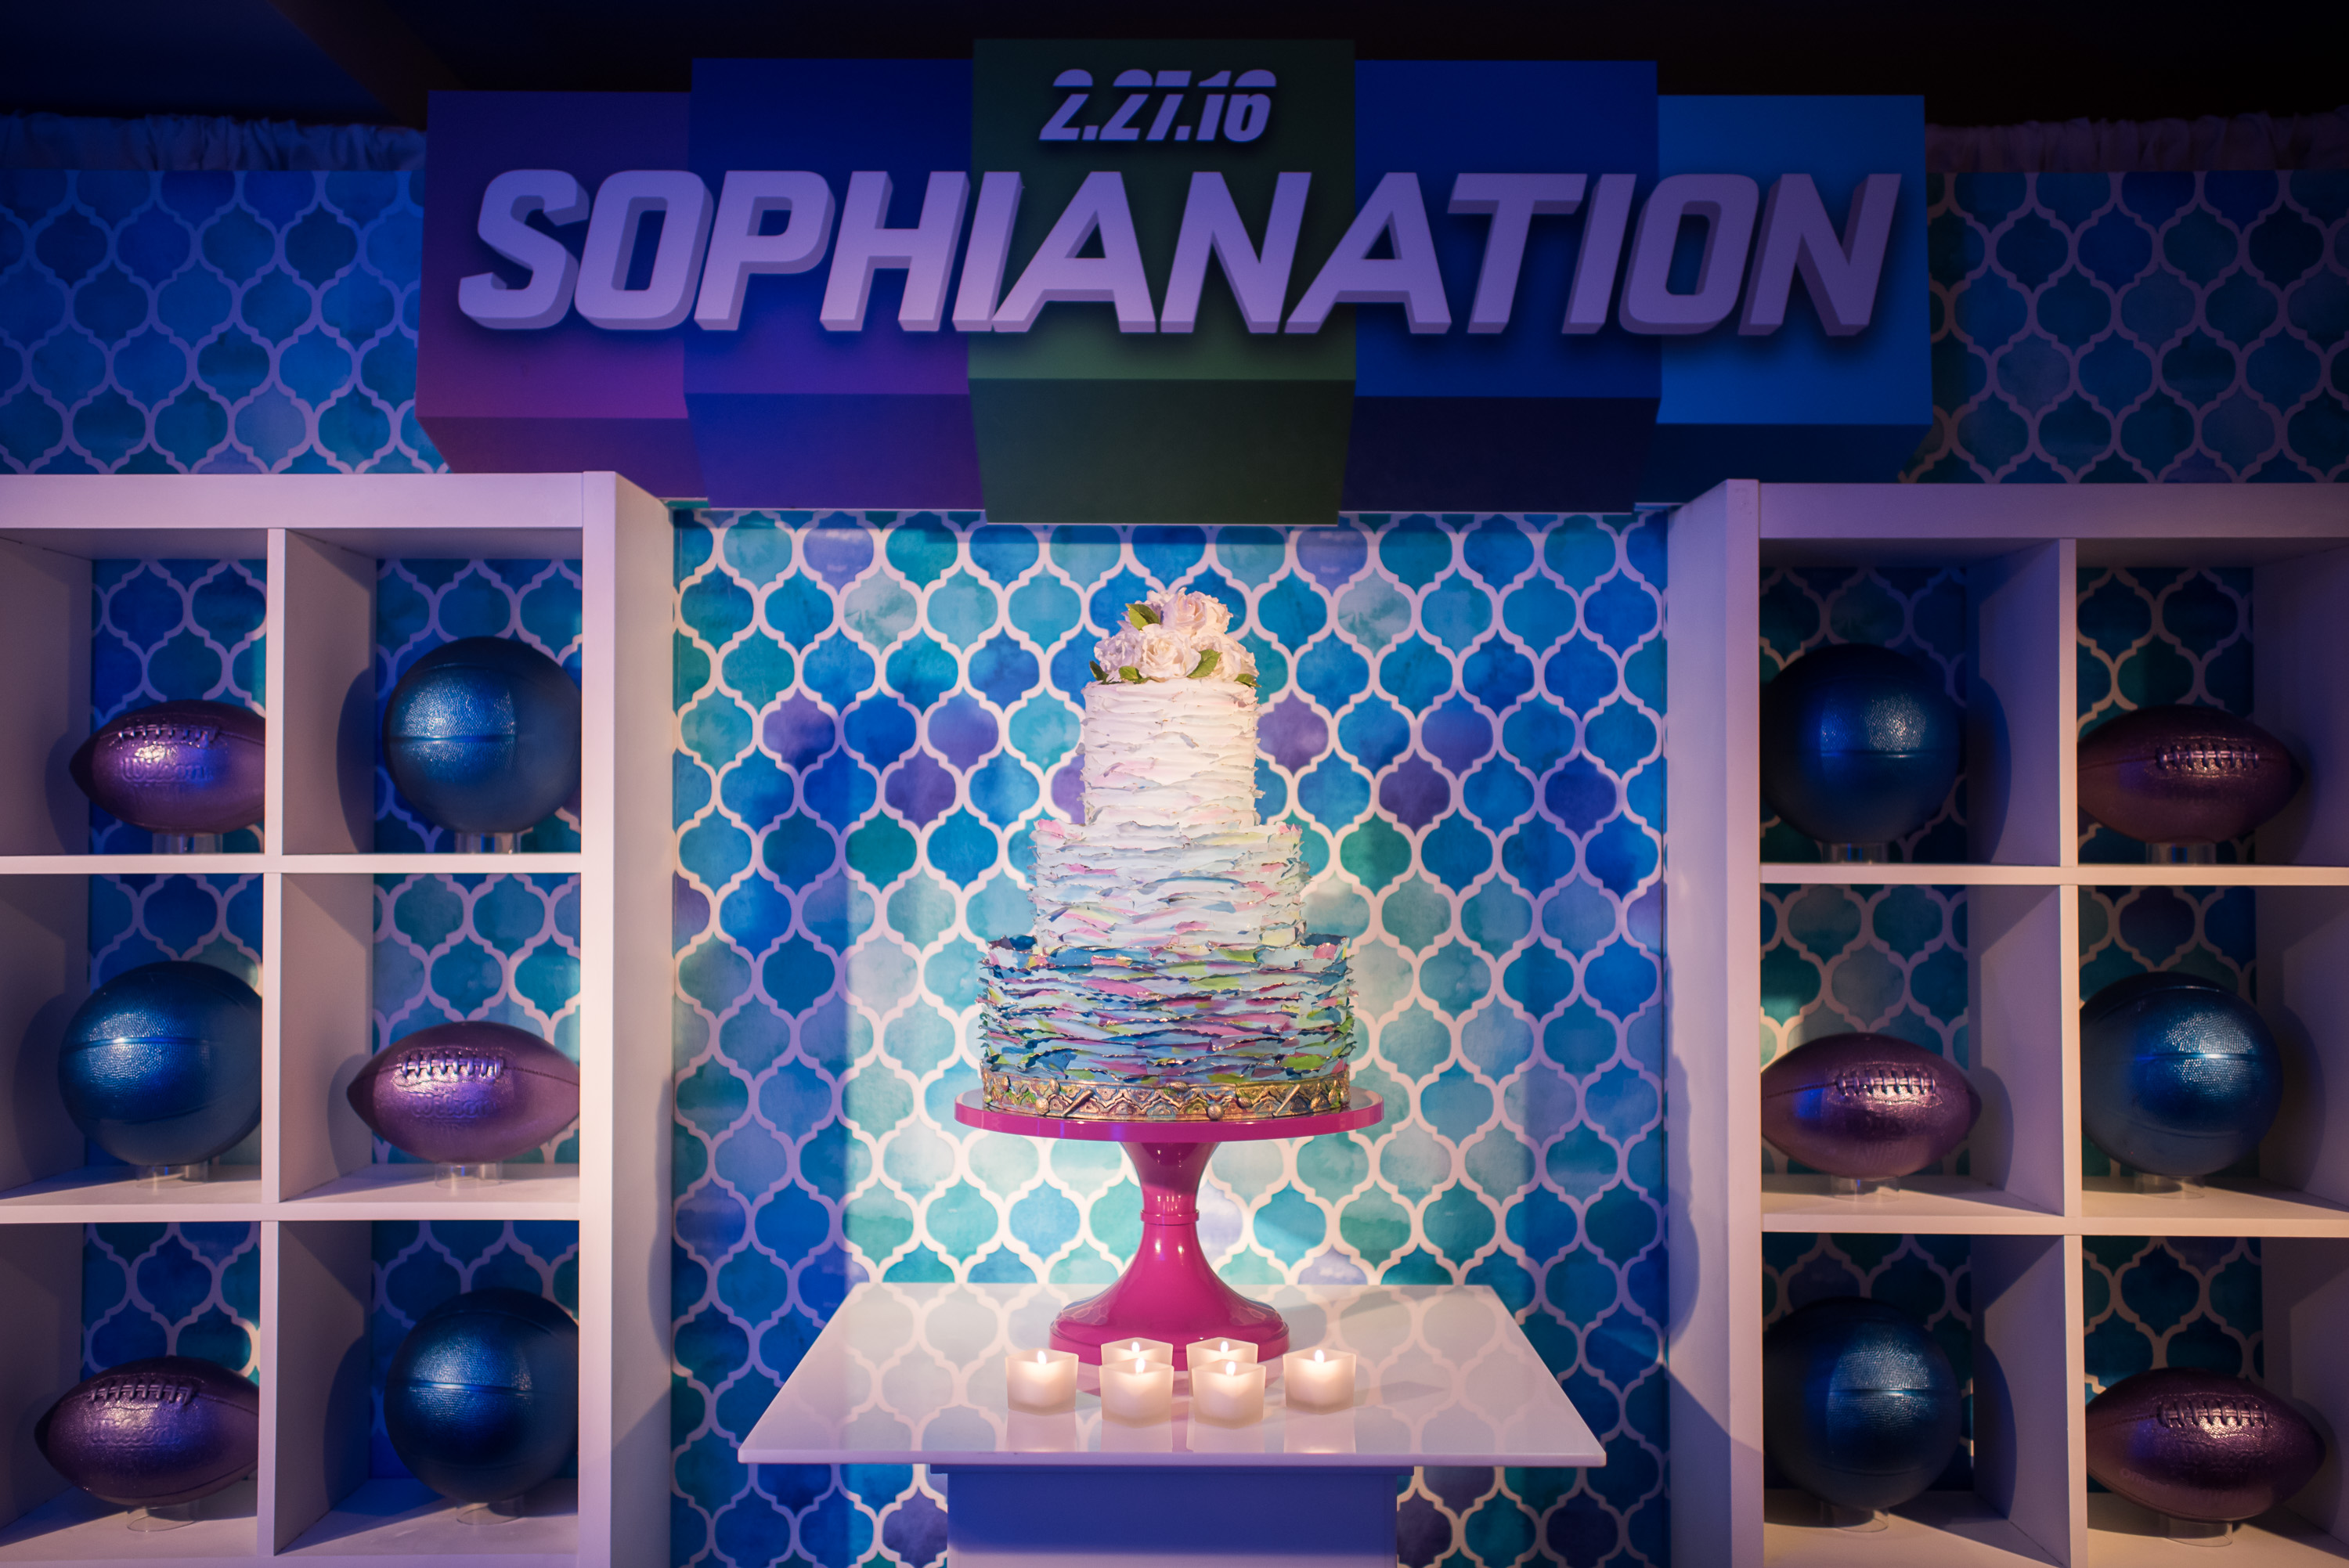 SportsNation Theme Bat Mitzvah - Magnolia Bluebird design & events